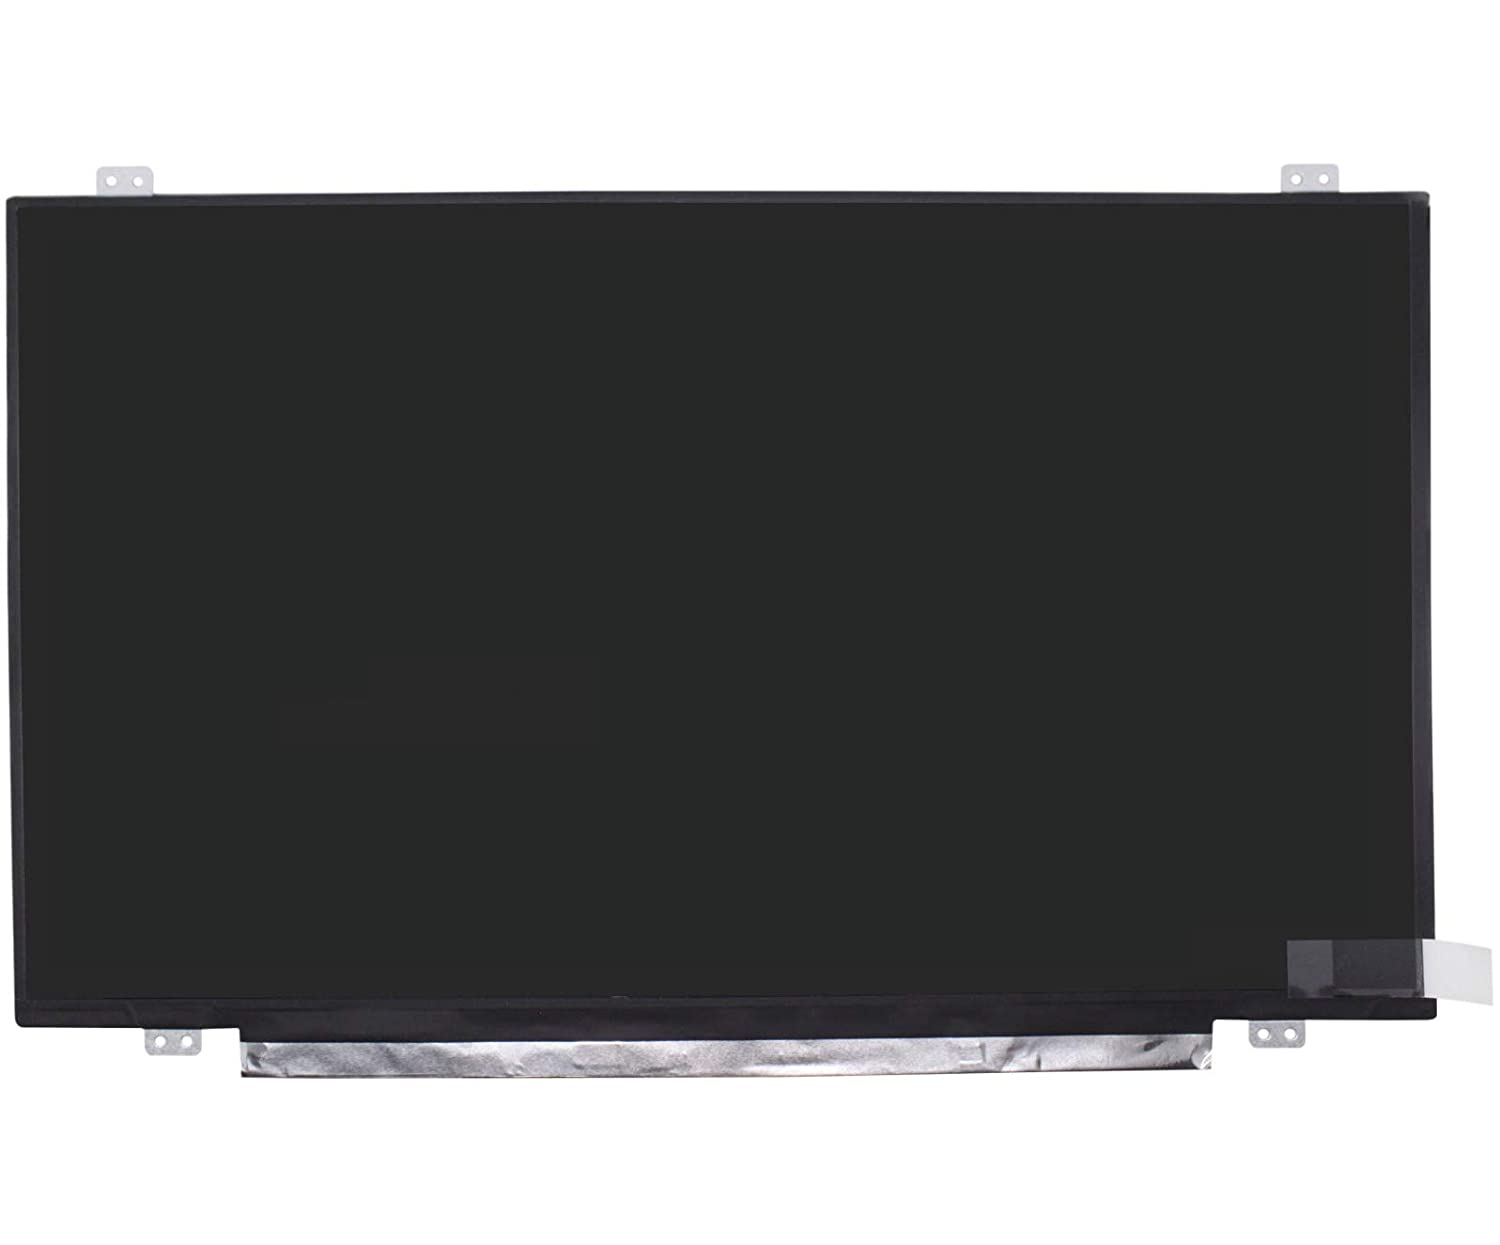 AJPARTS UK New Replacement For Acer Aspire TimelineX 4830TG-6457 Laptop Screen 14 LED BACKLIT Display